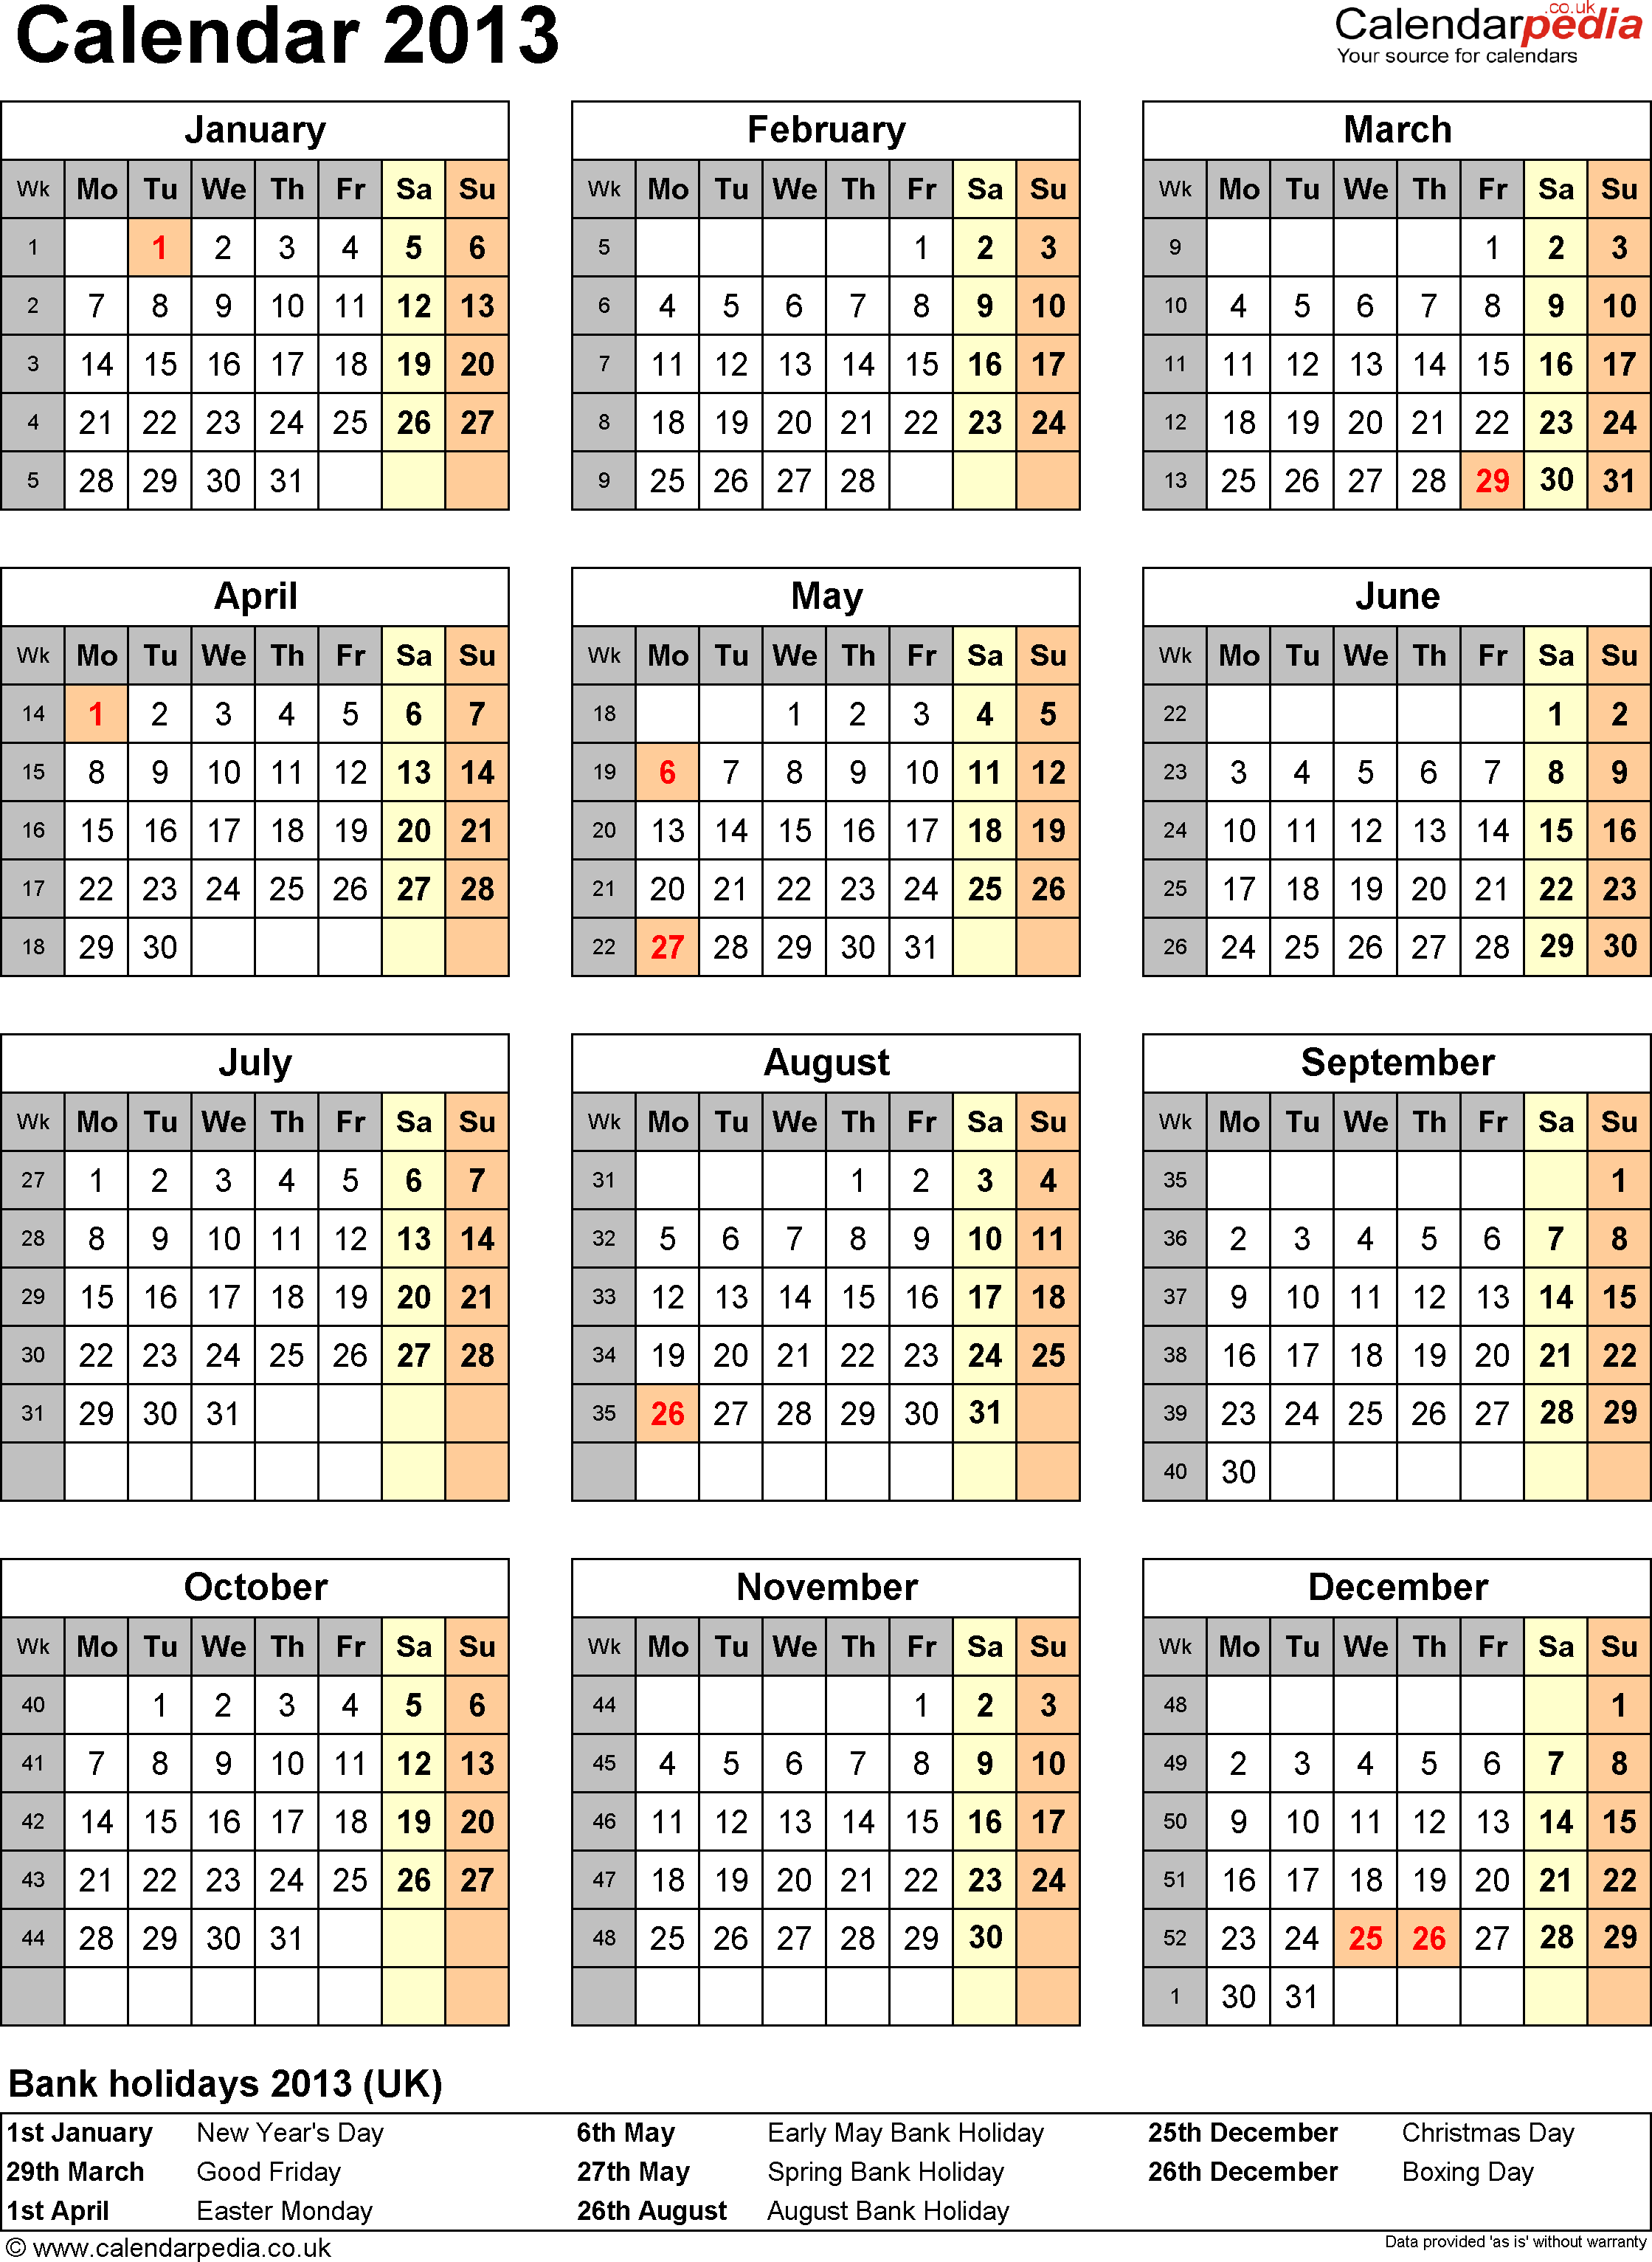 Download Template 11: Yearly calendar 2013 as PDF template, portrait orientation, one A4 page